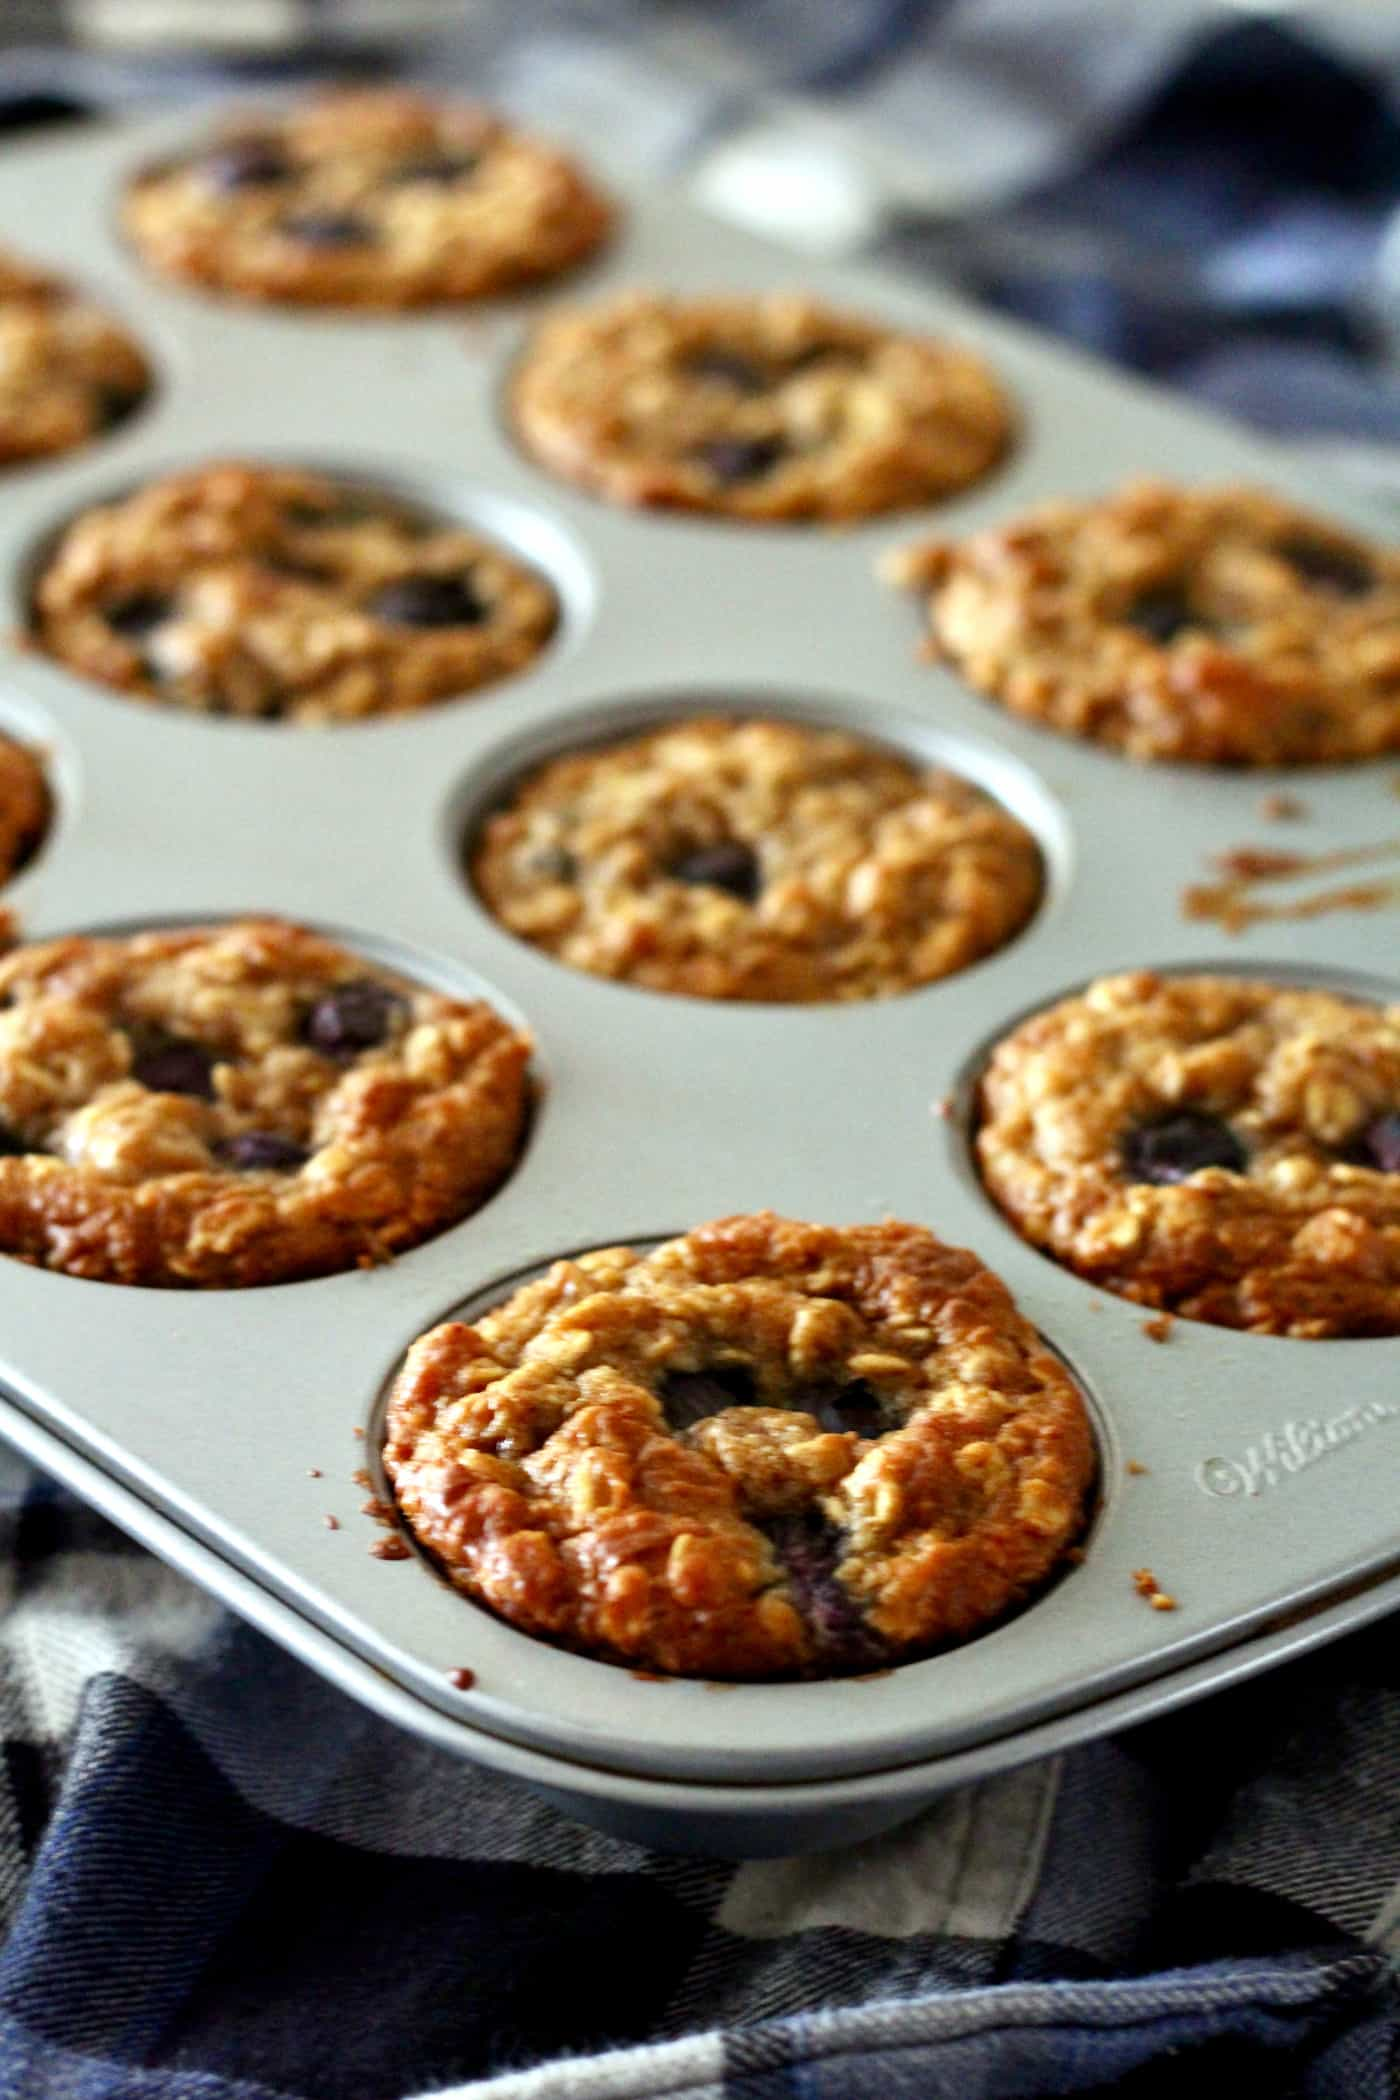 Almond Butter Oat Muffins with Blueberries